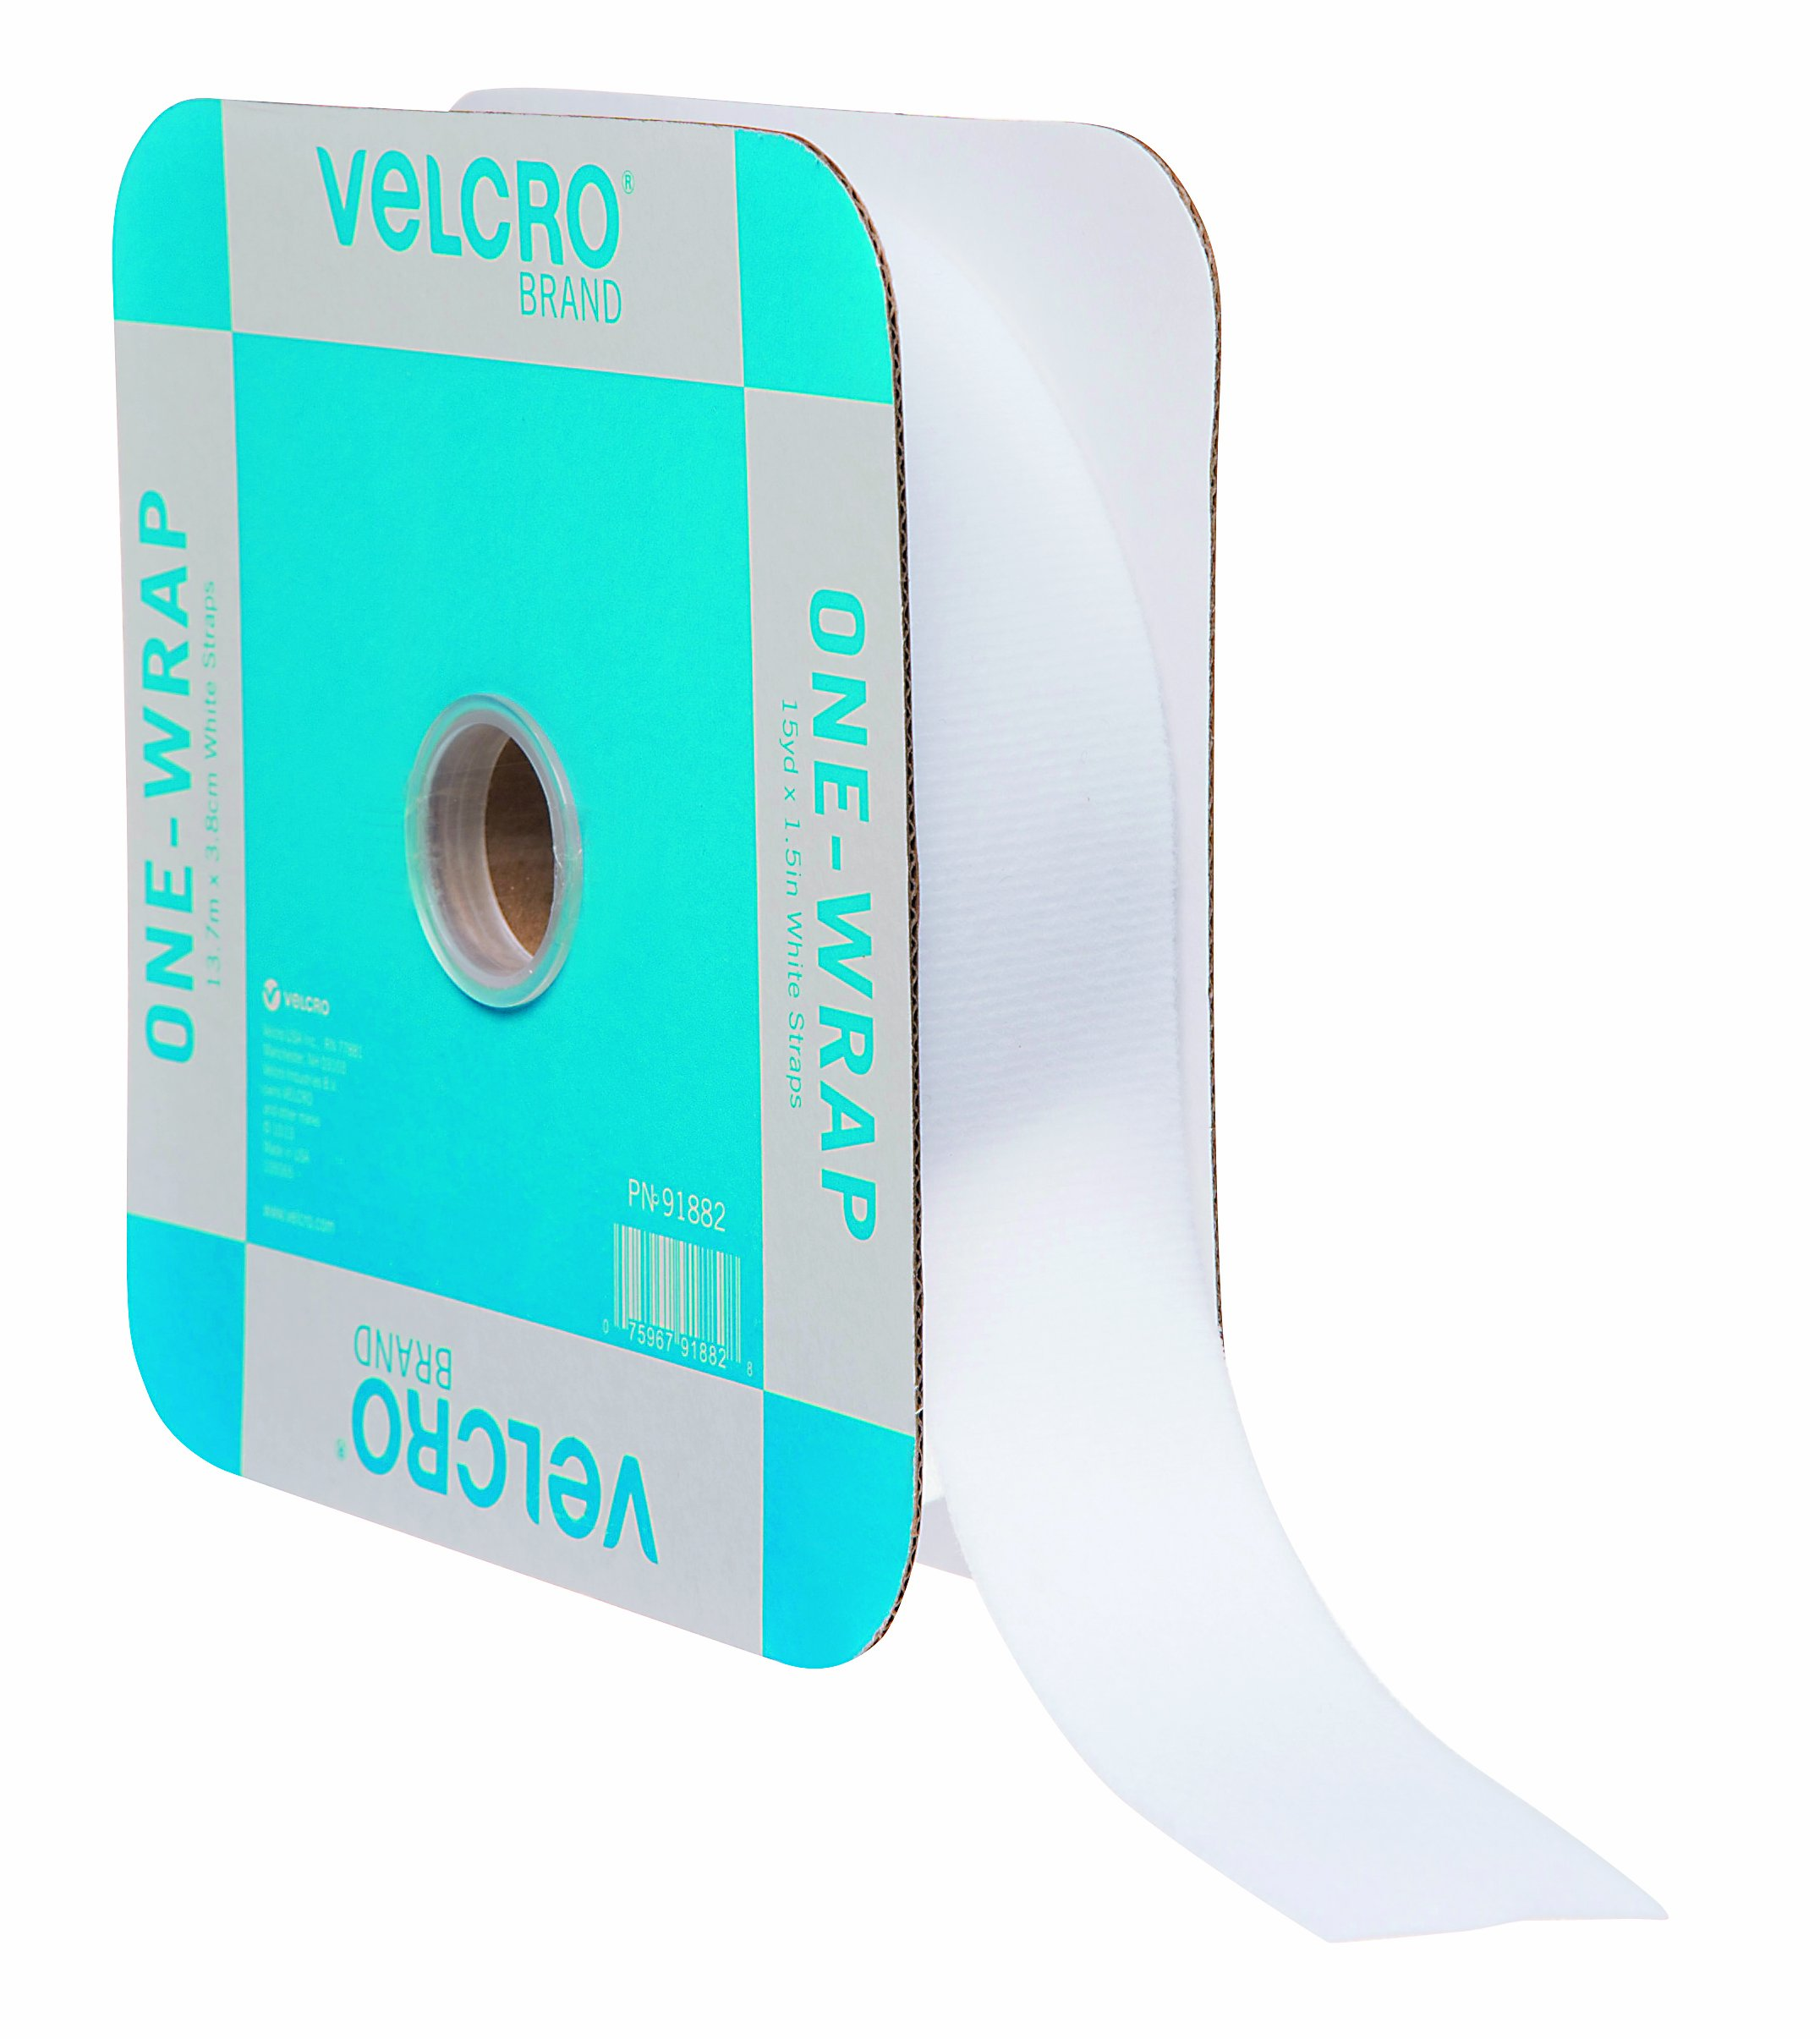 VELCRO Brand - ONE-WRAP Roll, Double-Sided, Self Gripping Multi-Purpose Hook and Loop Tape, Reusable, 45' x 1 1/2'' Roll - White by VELCRO Brand